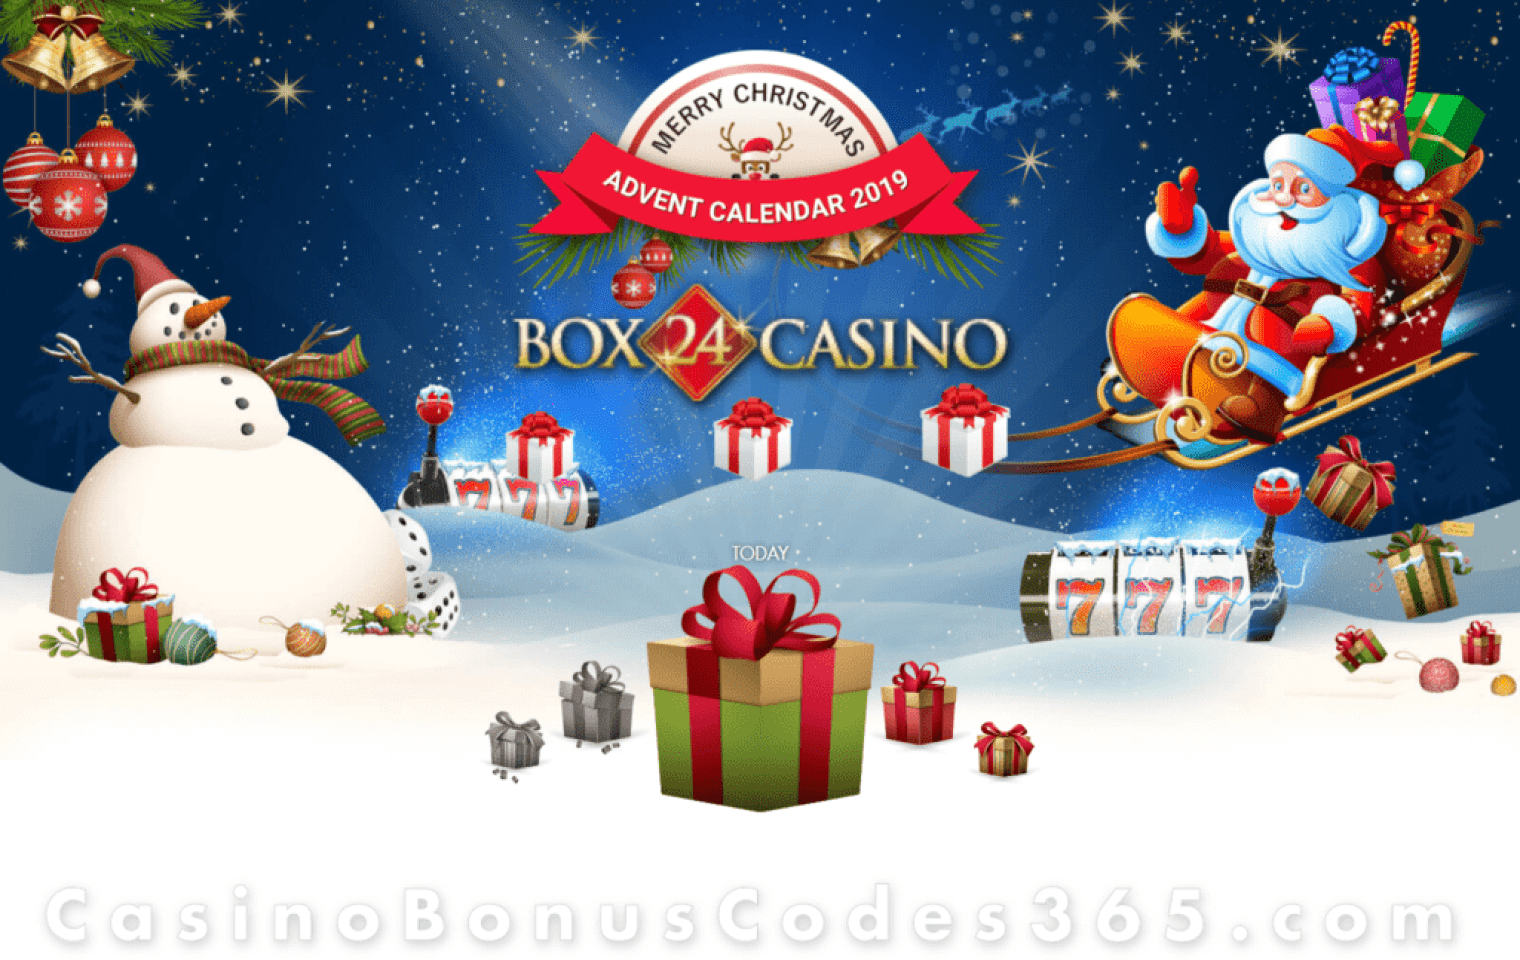 Box 24 Casino Advent Calendar 2019